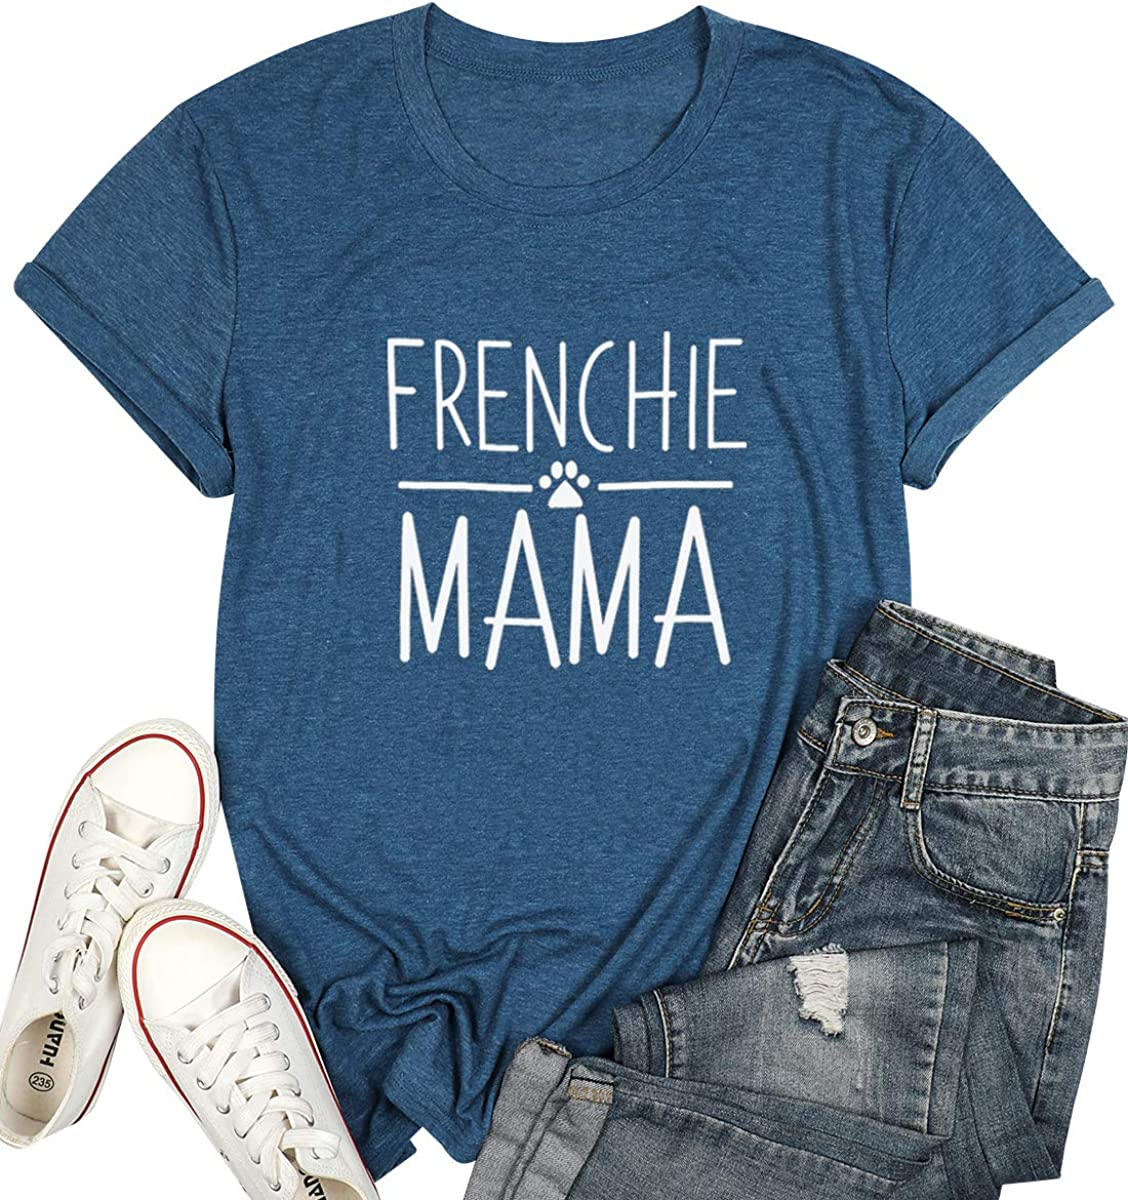 French Bulldog Dog Mom Muscle Tank Top Momma Mama Funny Workout Gym Cute Gift Tee T-shirt Tshirt Womens